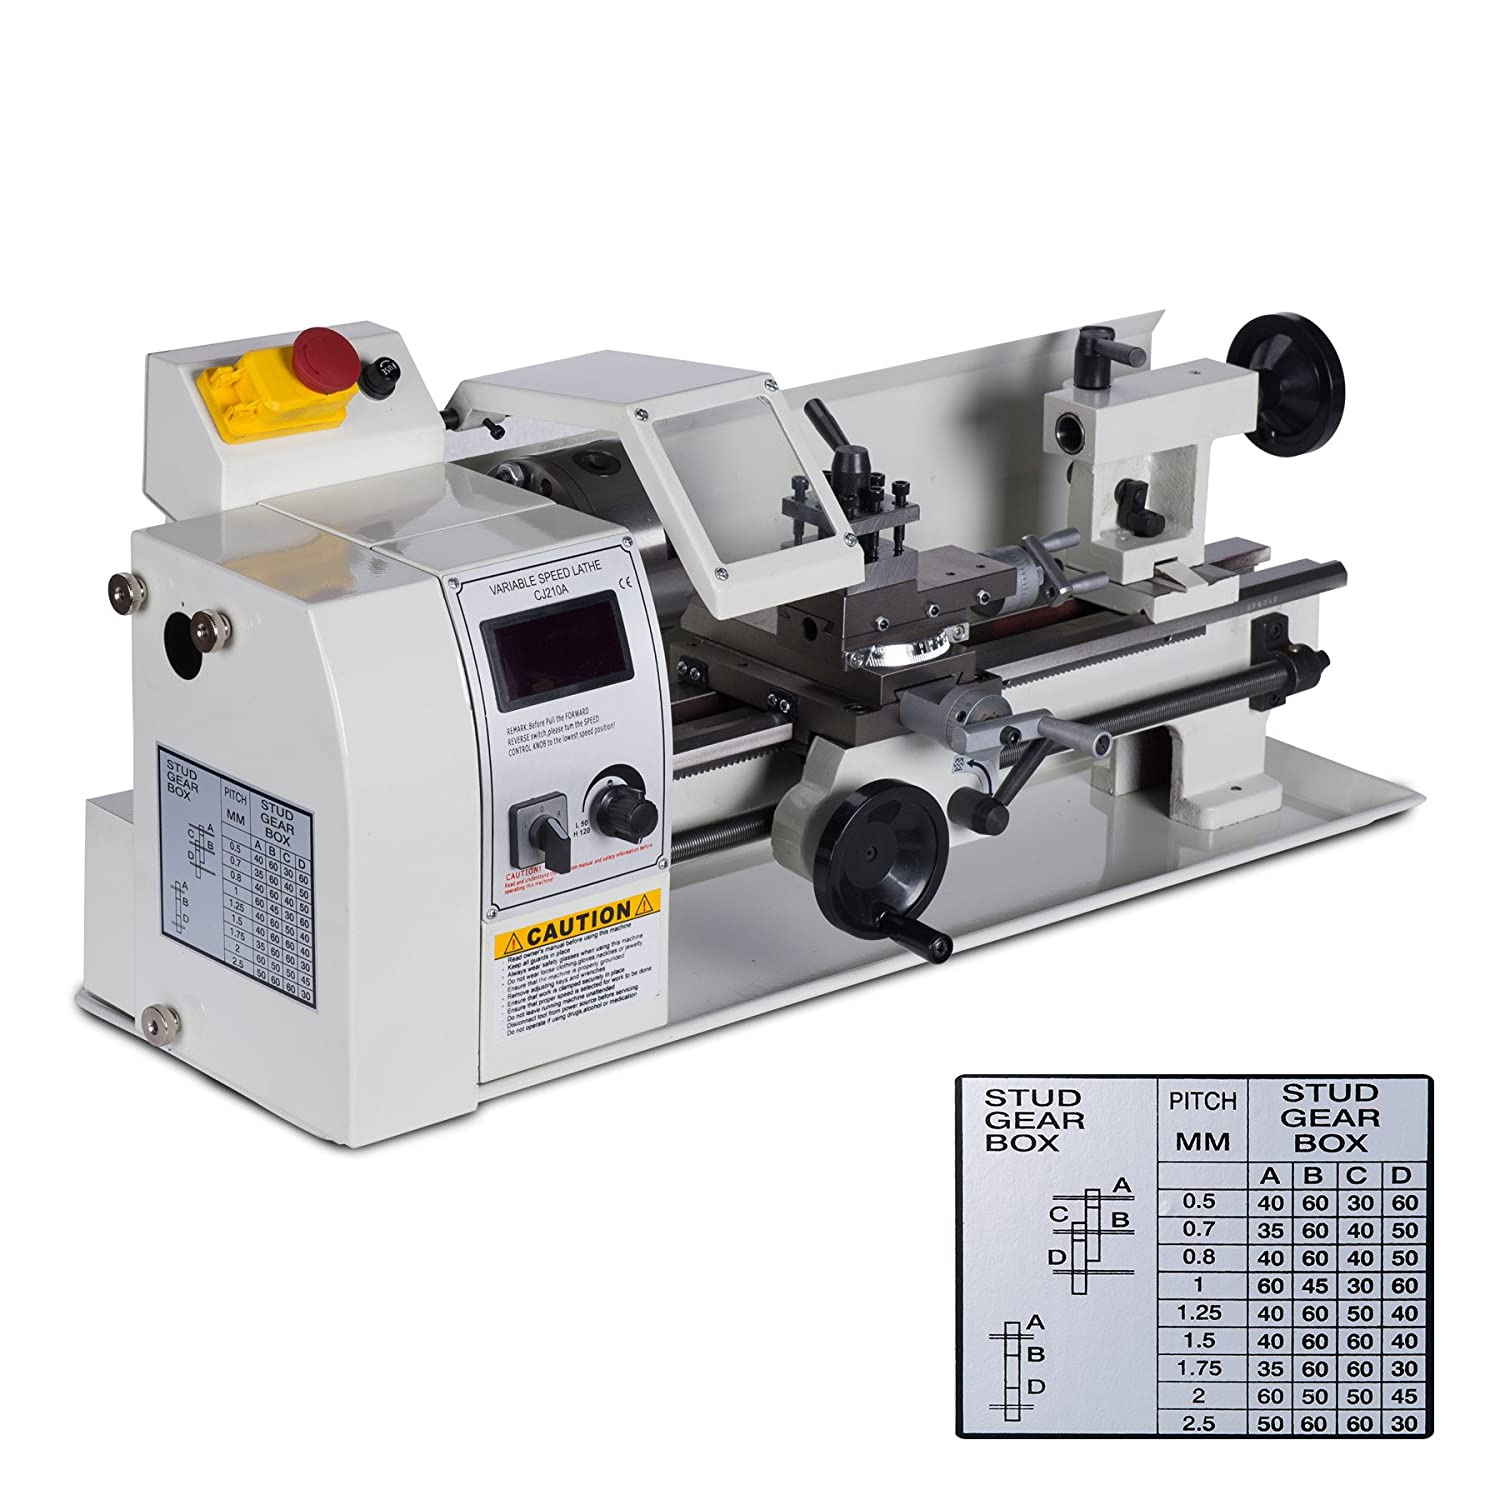 Orion Motor Tech 8 X 14 Mini Metal Lathe Variable Reversing A Speed 2500 Rpm 600w Milling Bench Top Machine With Digital Control System